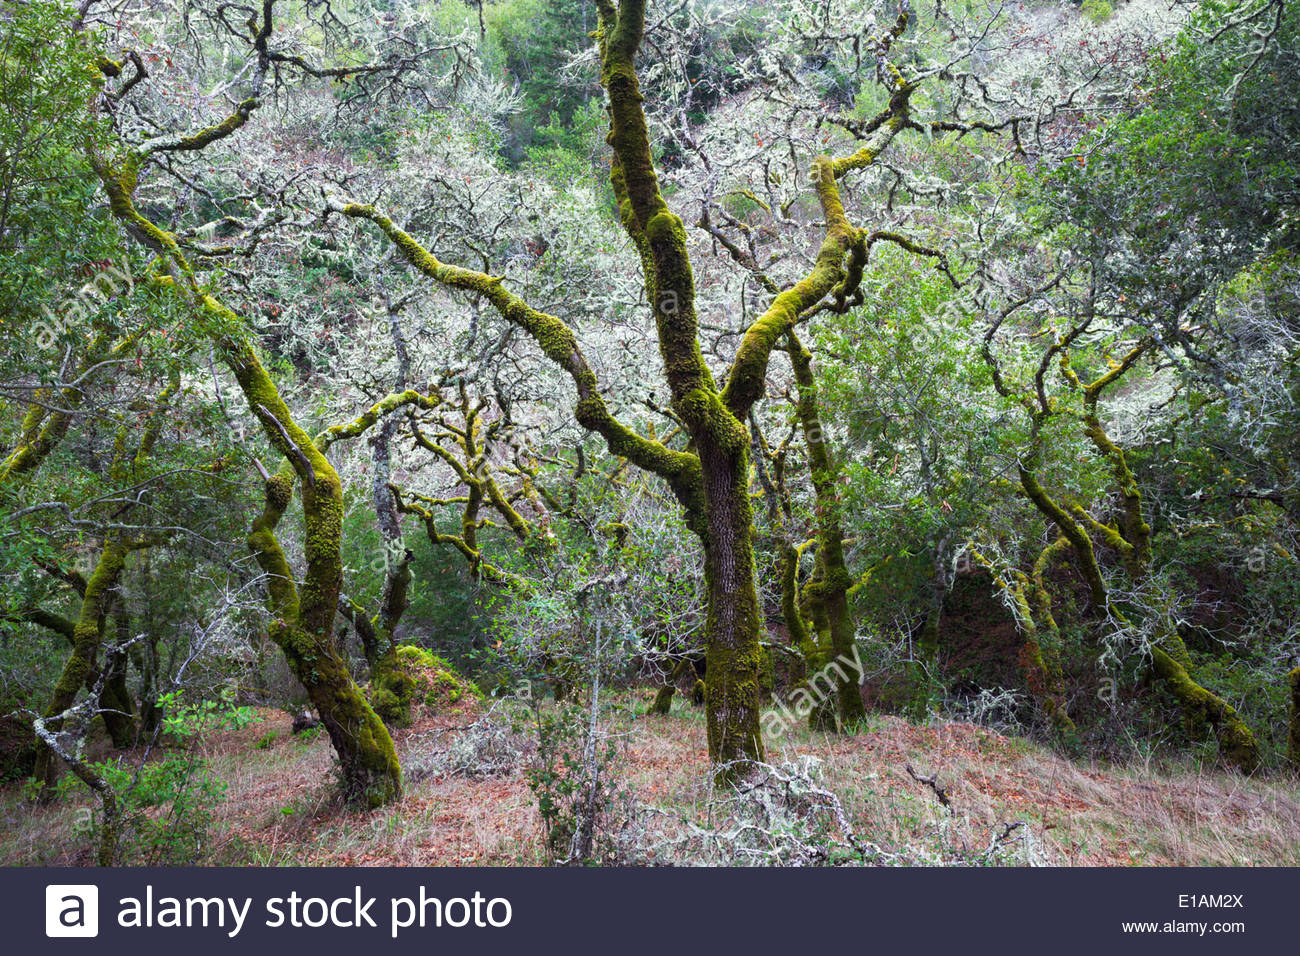 Mossy Trees, Cascade Canyon Open Space Preserve, California - Stock Image